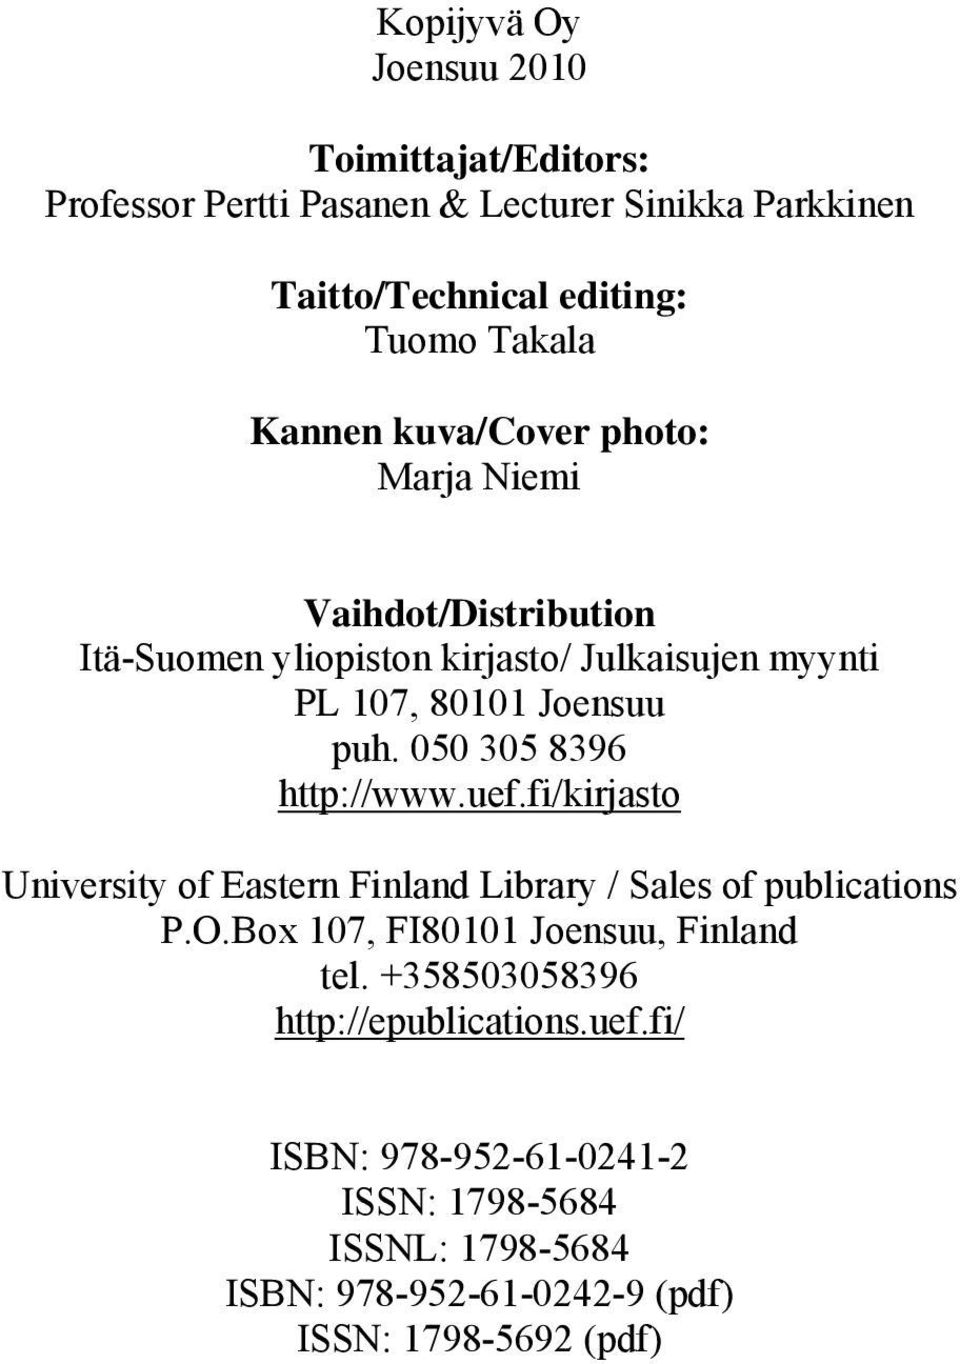 050 305 8396 http://www.uef.fi/kirjasto University of Eastern Finland Library / Sales of publications P.O.